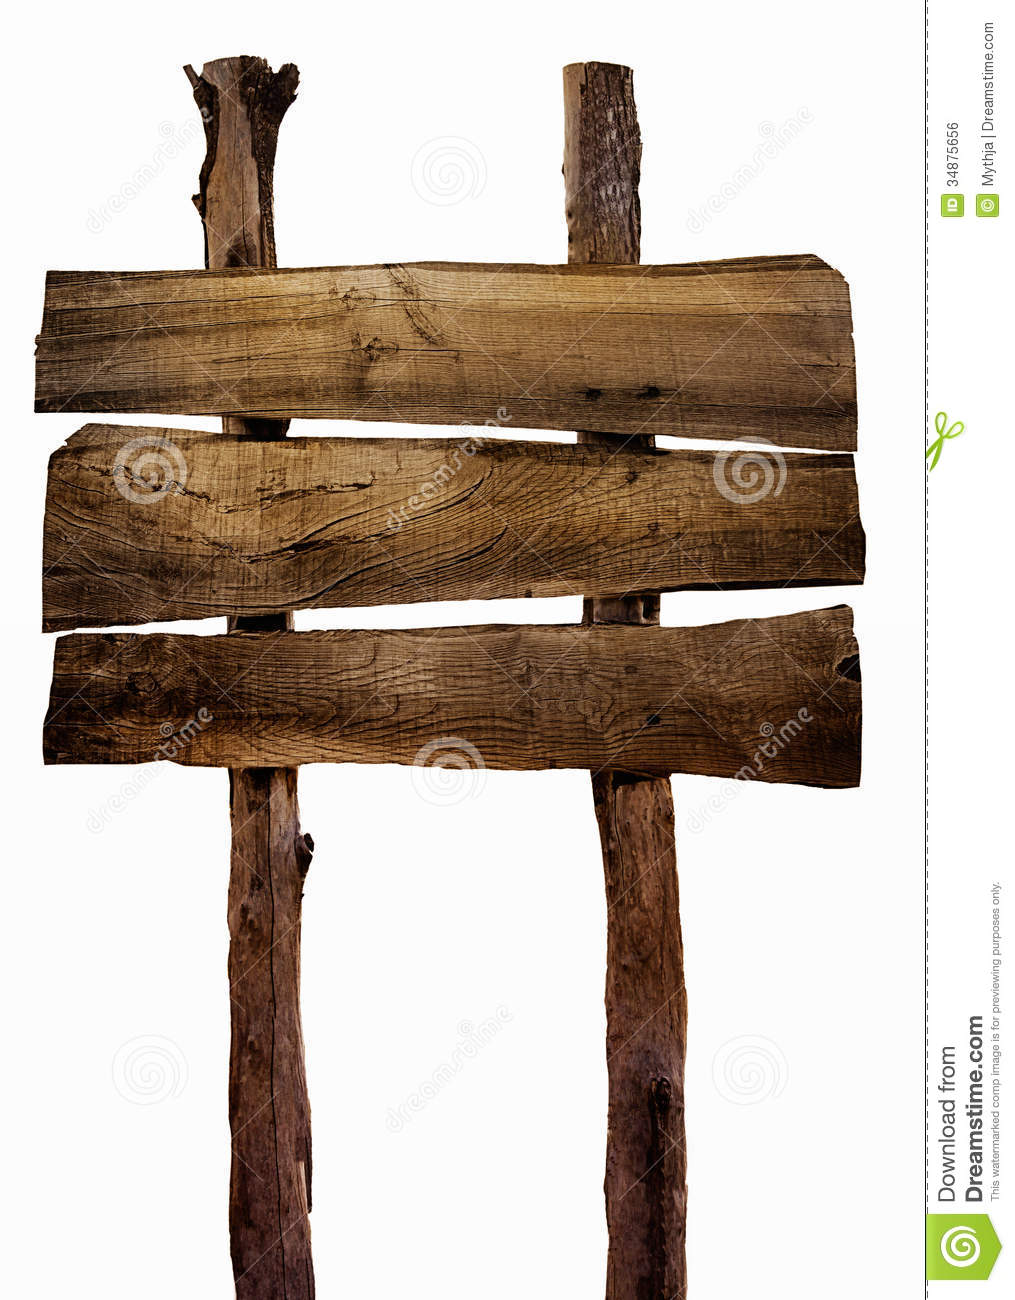 Wooden Sign Royalty Free Stock Image  Image 34875656